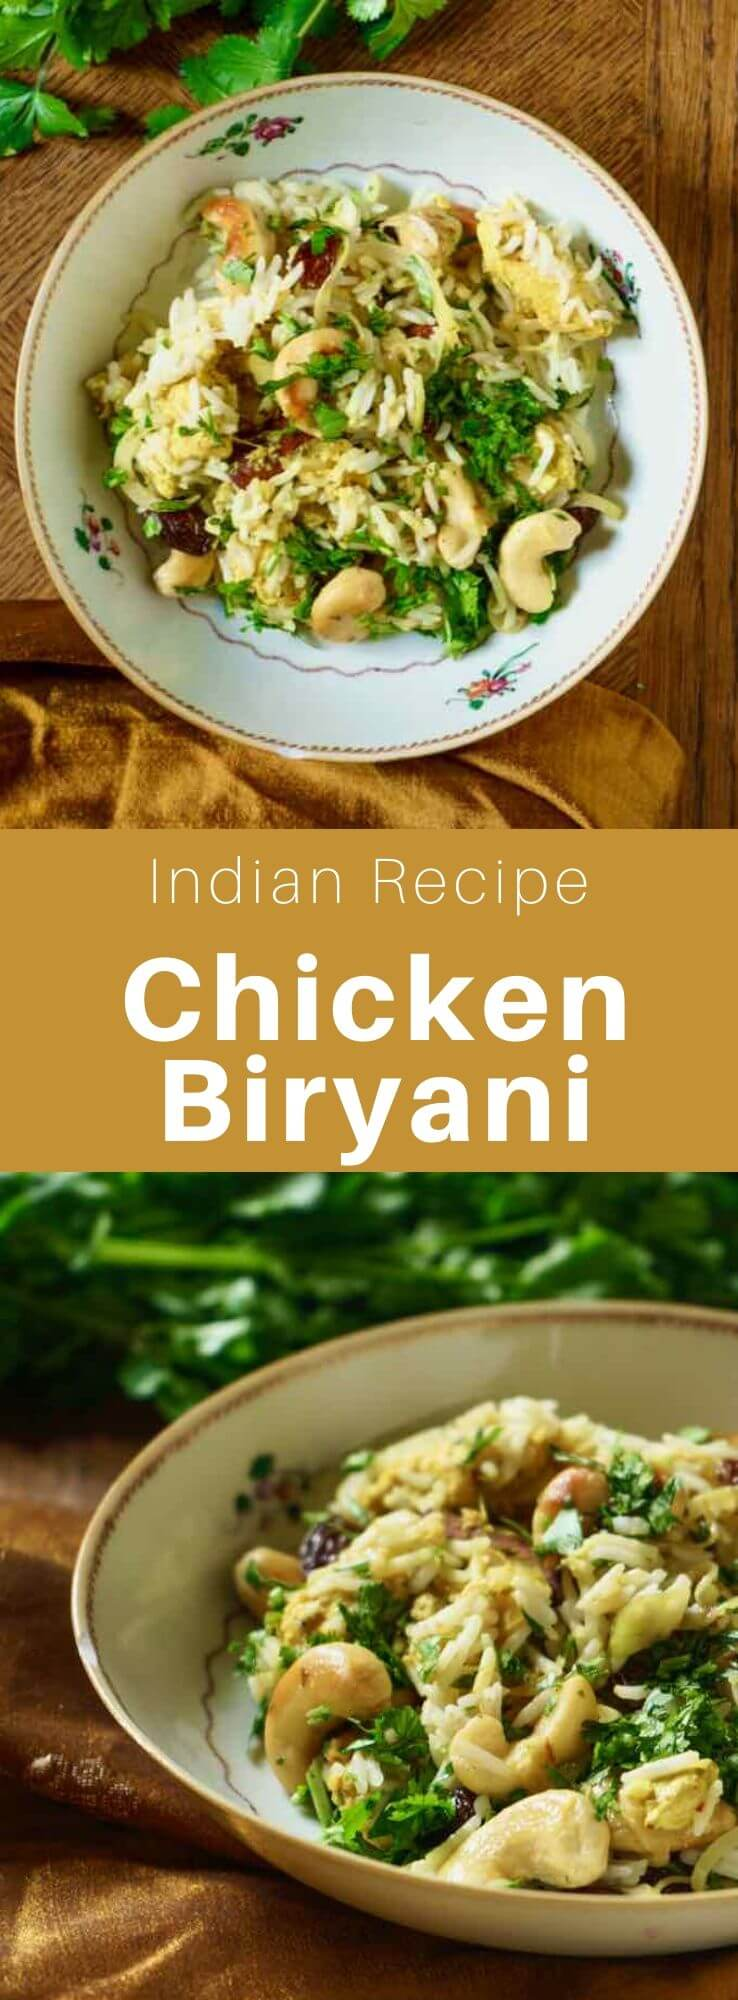 Biryani (बिरयानी) is a dish from the Indian subcontinent based on rice, in general, basmati, prepared with spices, meat, eggs or vegetables. #India #Indian #IndianRecipe #IndianCuisine #IndianFood #WorldCuisine #196flavors